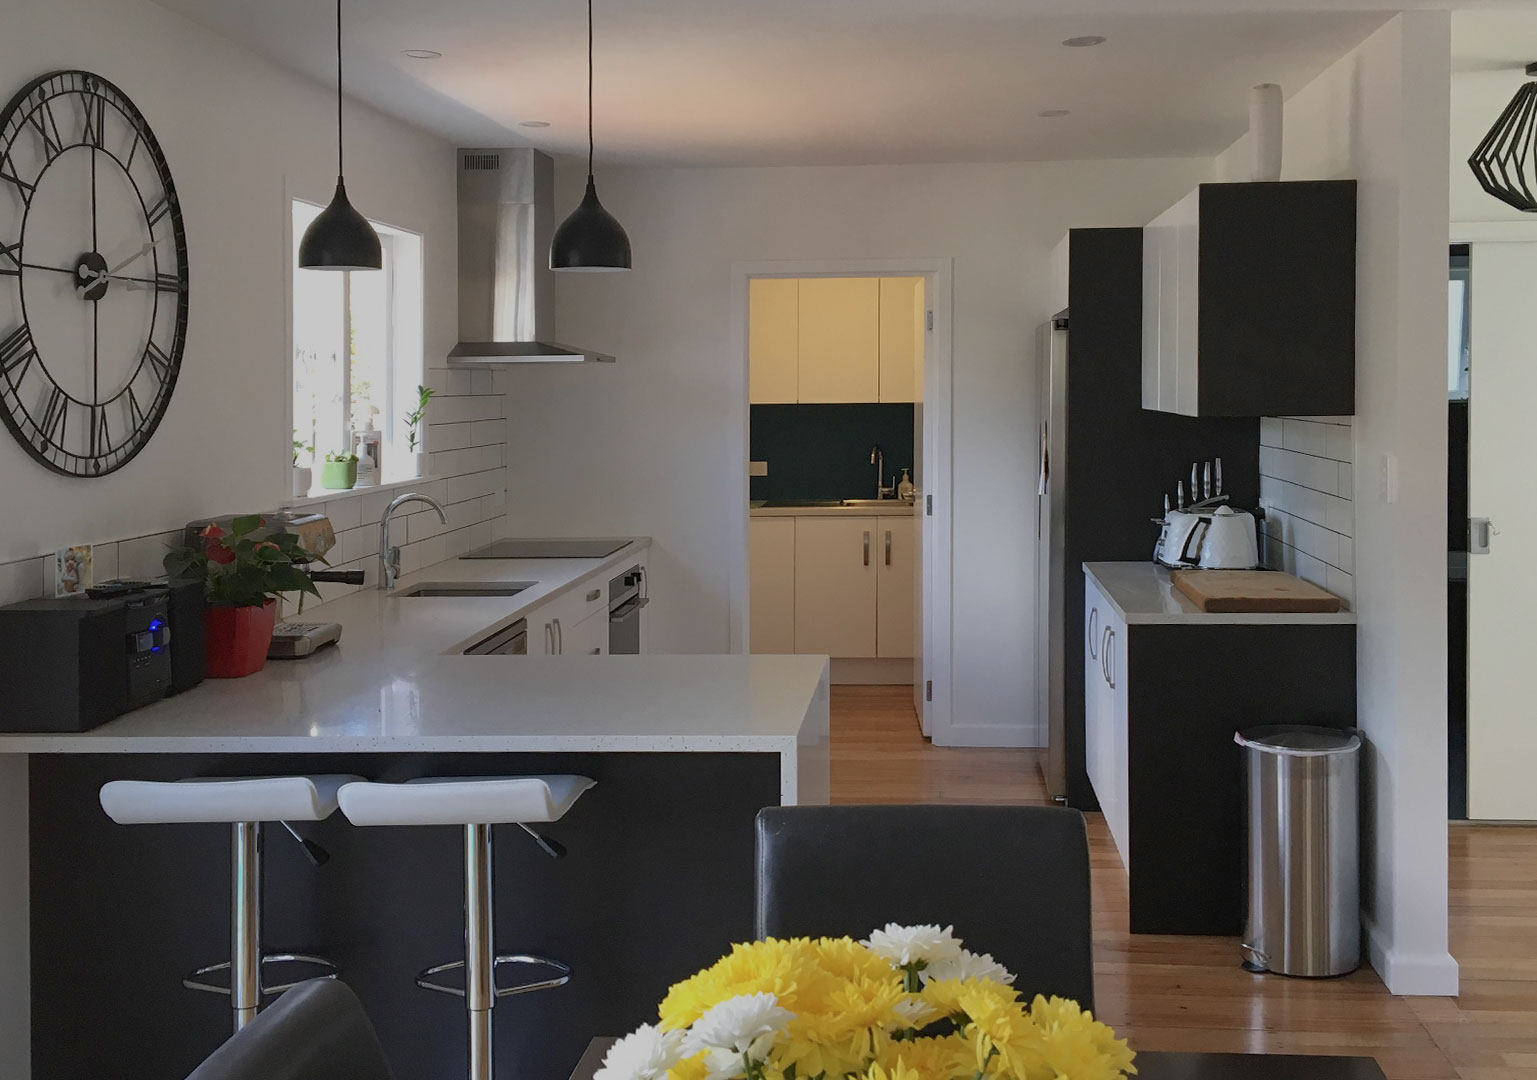 WHY URBAN EDGE - Here at Urban Edge Construction, we are qualified professionals and licensed building practitioners which will allow you the peace of mind that your home is in the best possible hands. Owned and operated out of West Auckland, our team takes pride in our high standards of work and delivery.